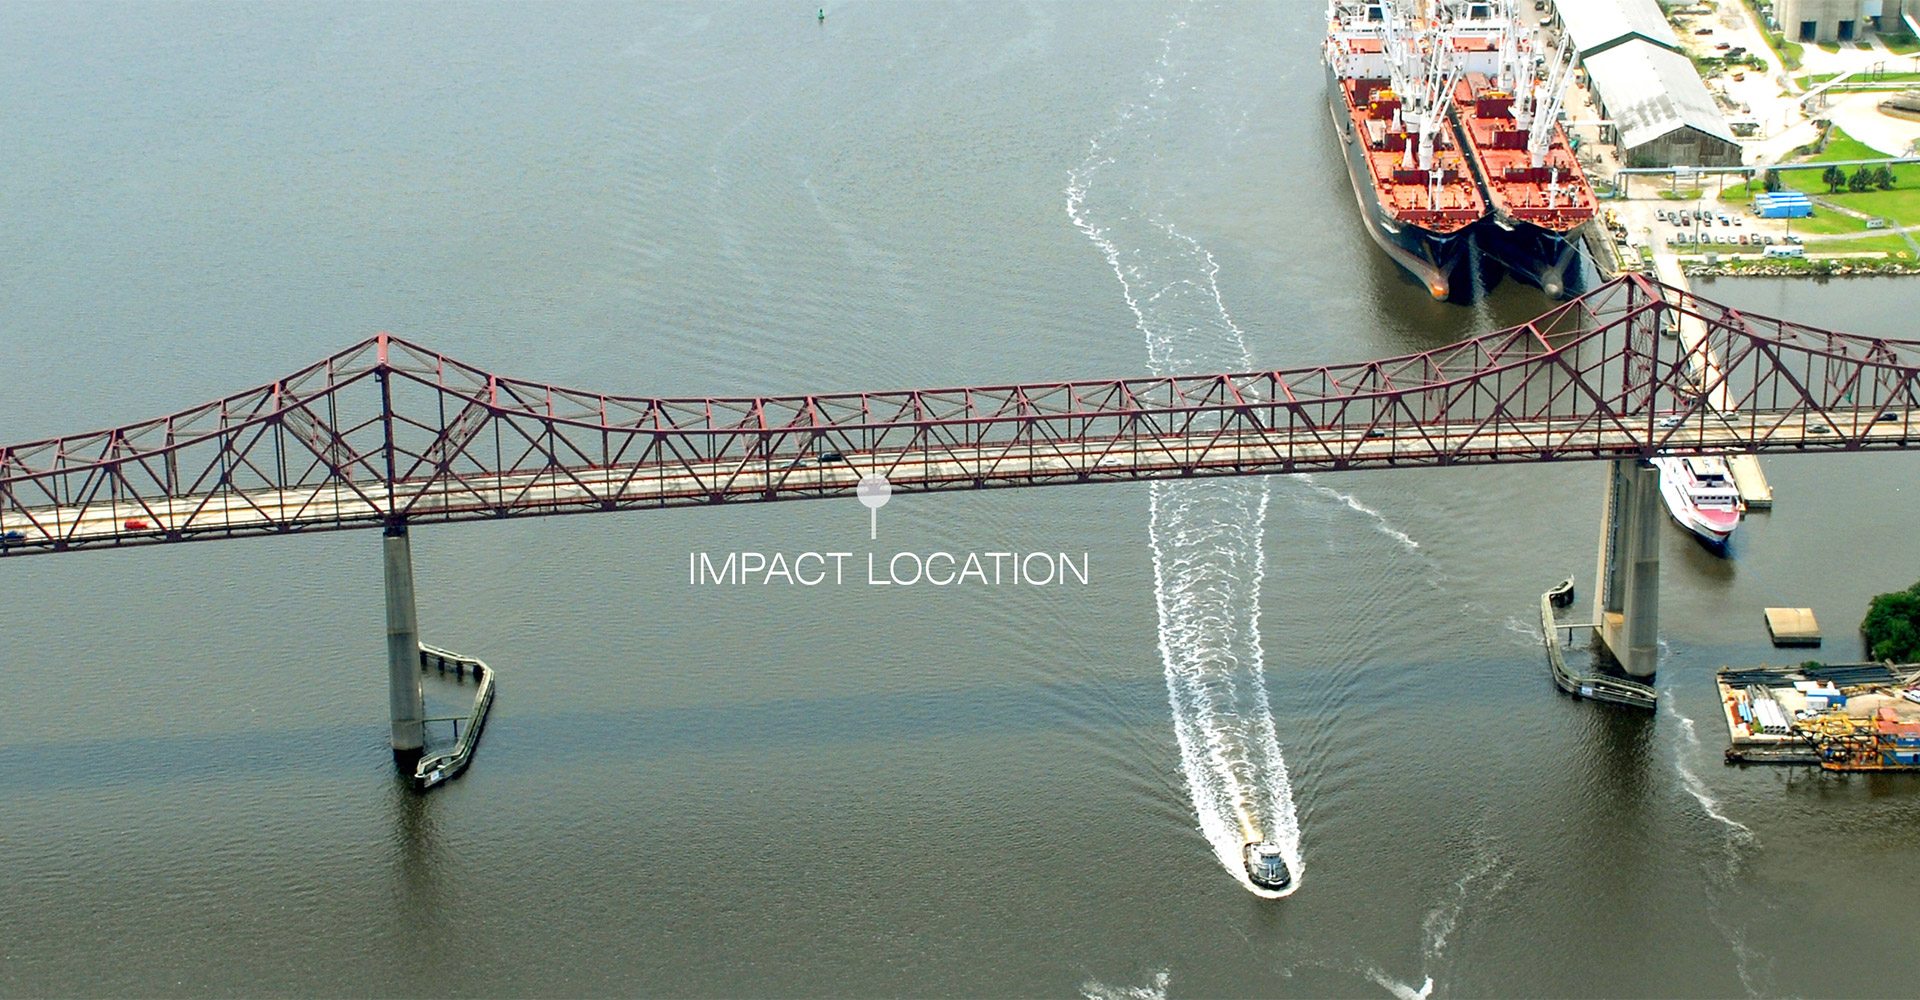 Aerial of impact location on Mathews Bridge.